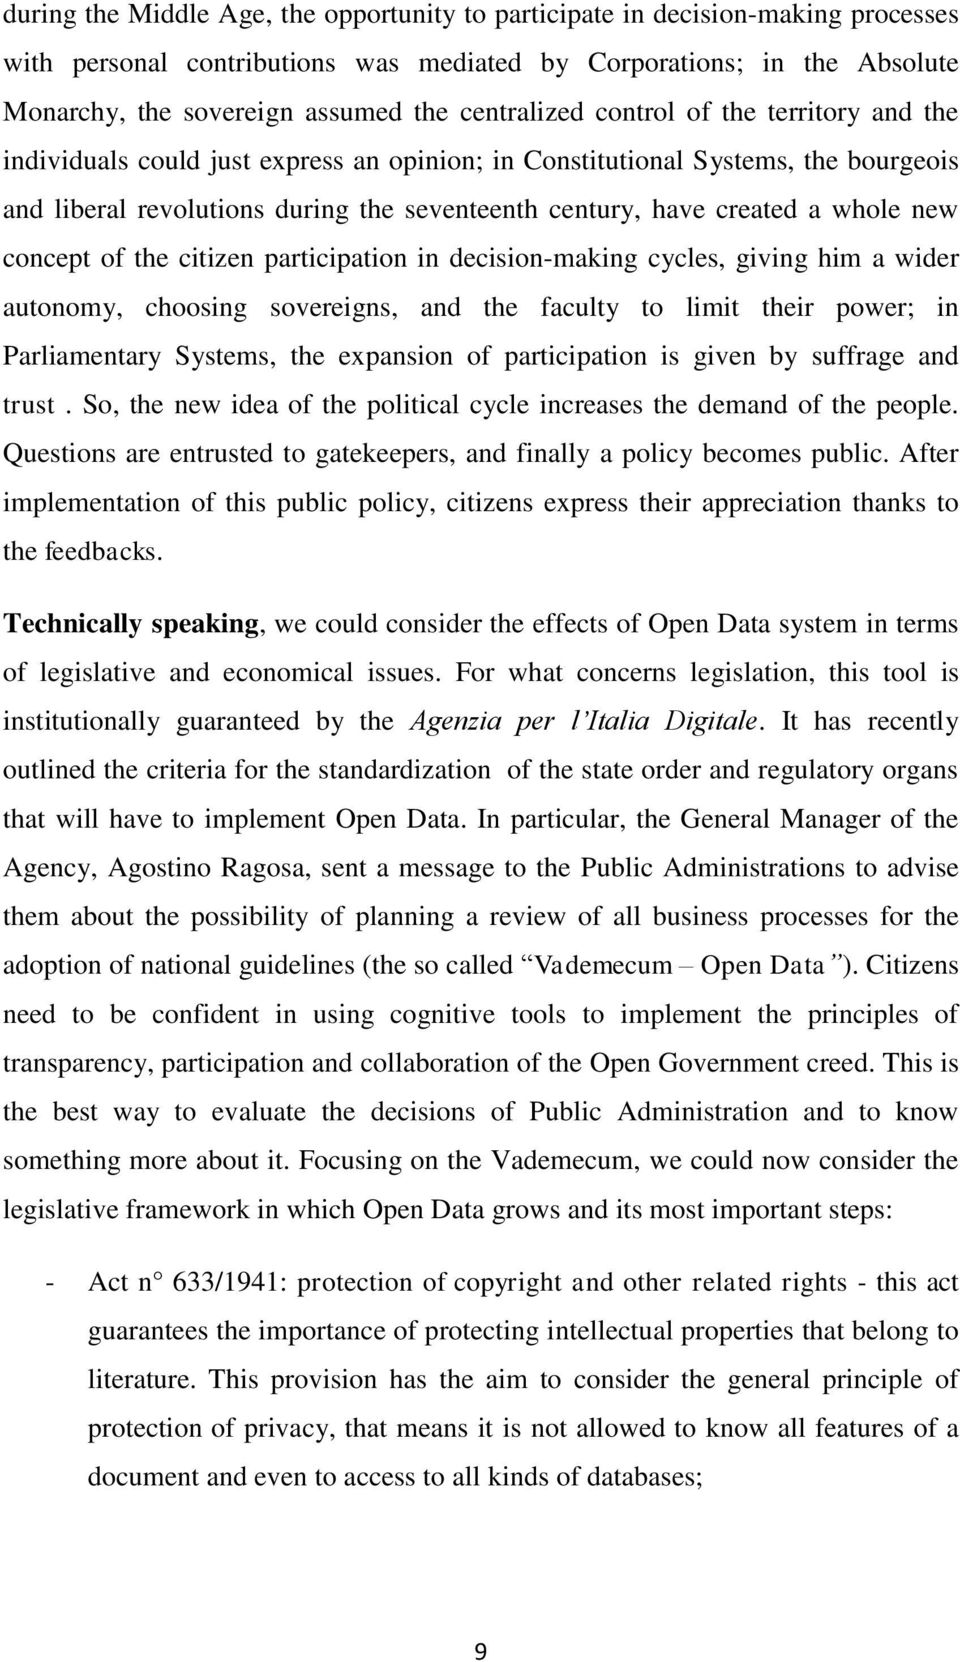 whole new concept of the citizen participation in decision-making cycles, giving him a wider autonomy, choosing sovereigns, and the faculty to limit their power; in Parliamentary Systems, the